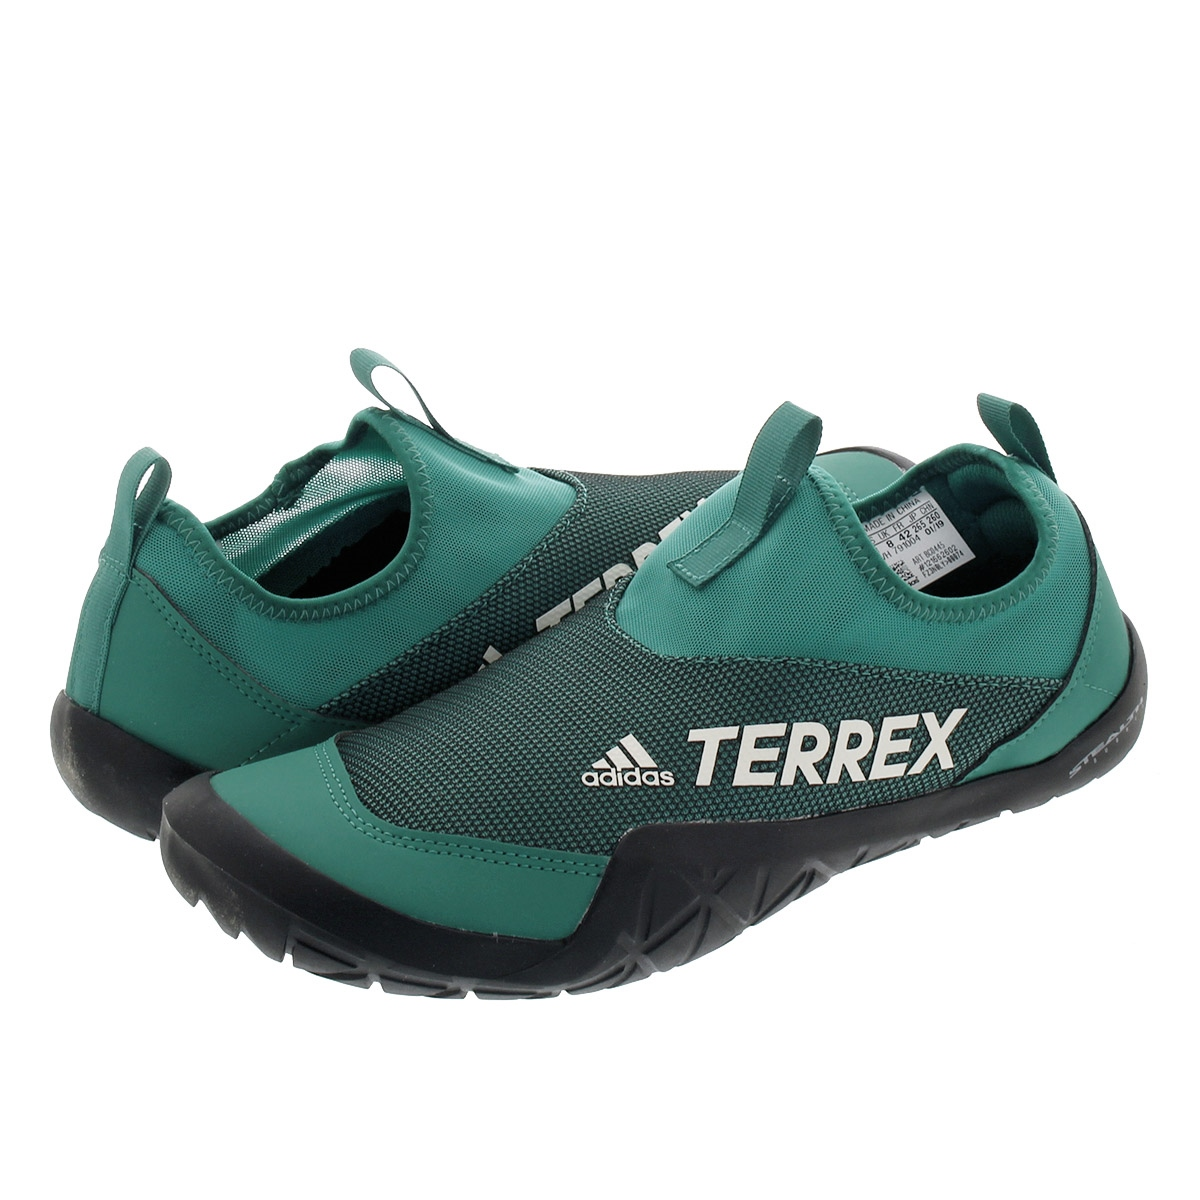 reputable site ef335 20e96 adidas TERREX CC JAWPAW アディダステレックスクライマクールジャパウ ACTIVE GREEN/CORE BLACK/LOW  WHITE bc0445